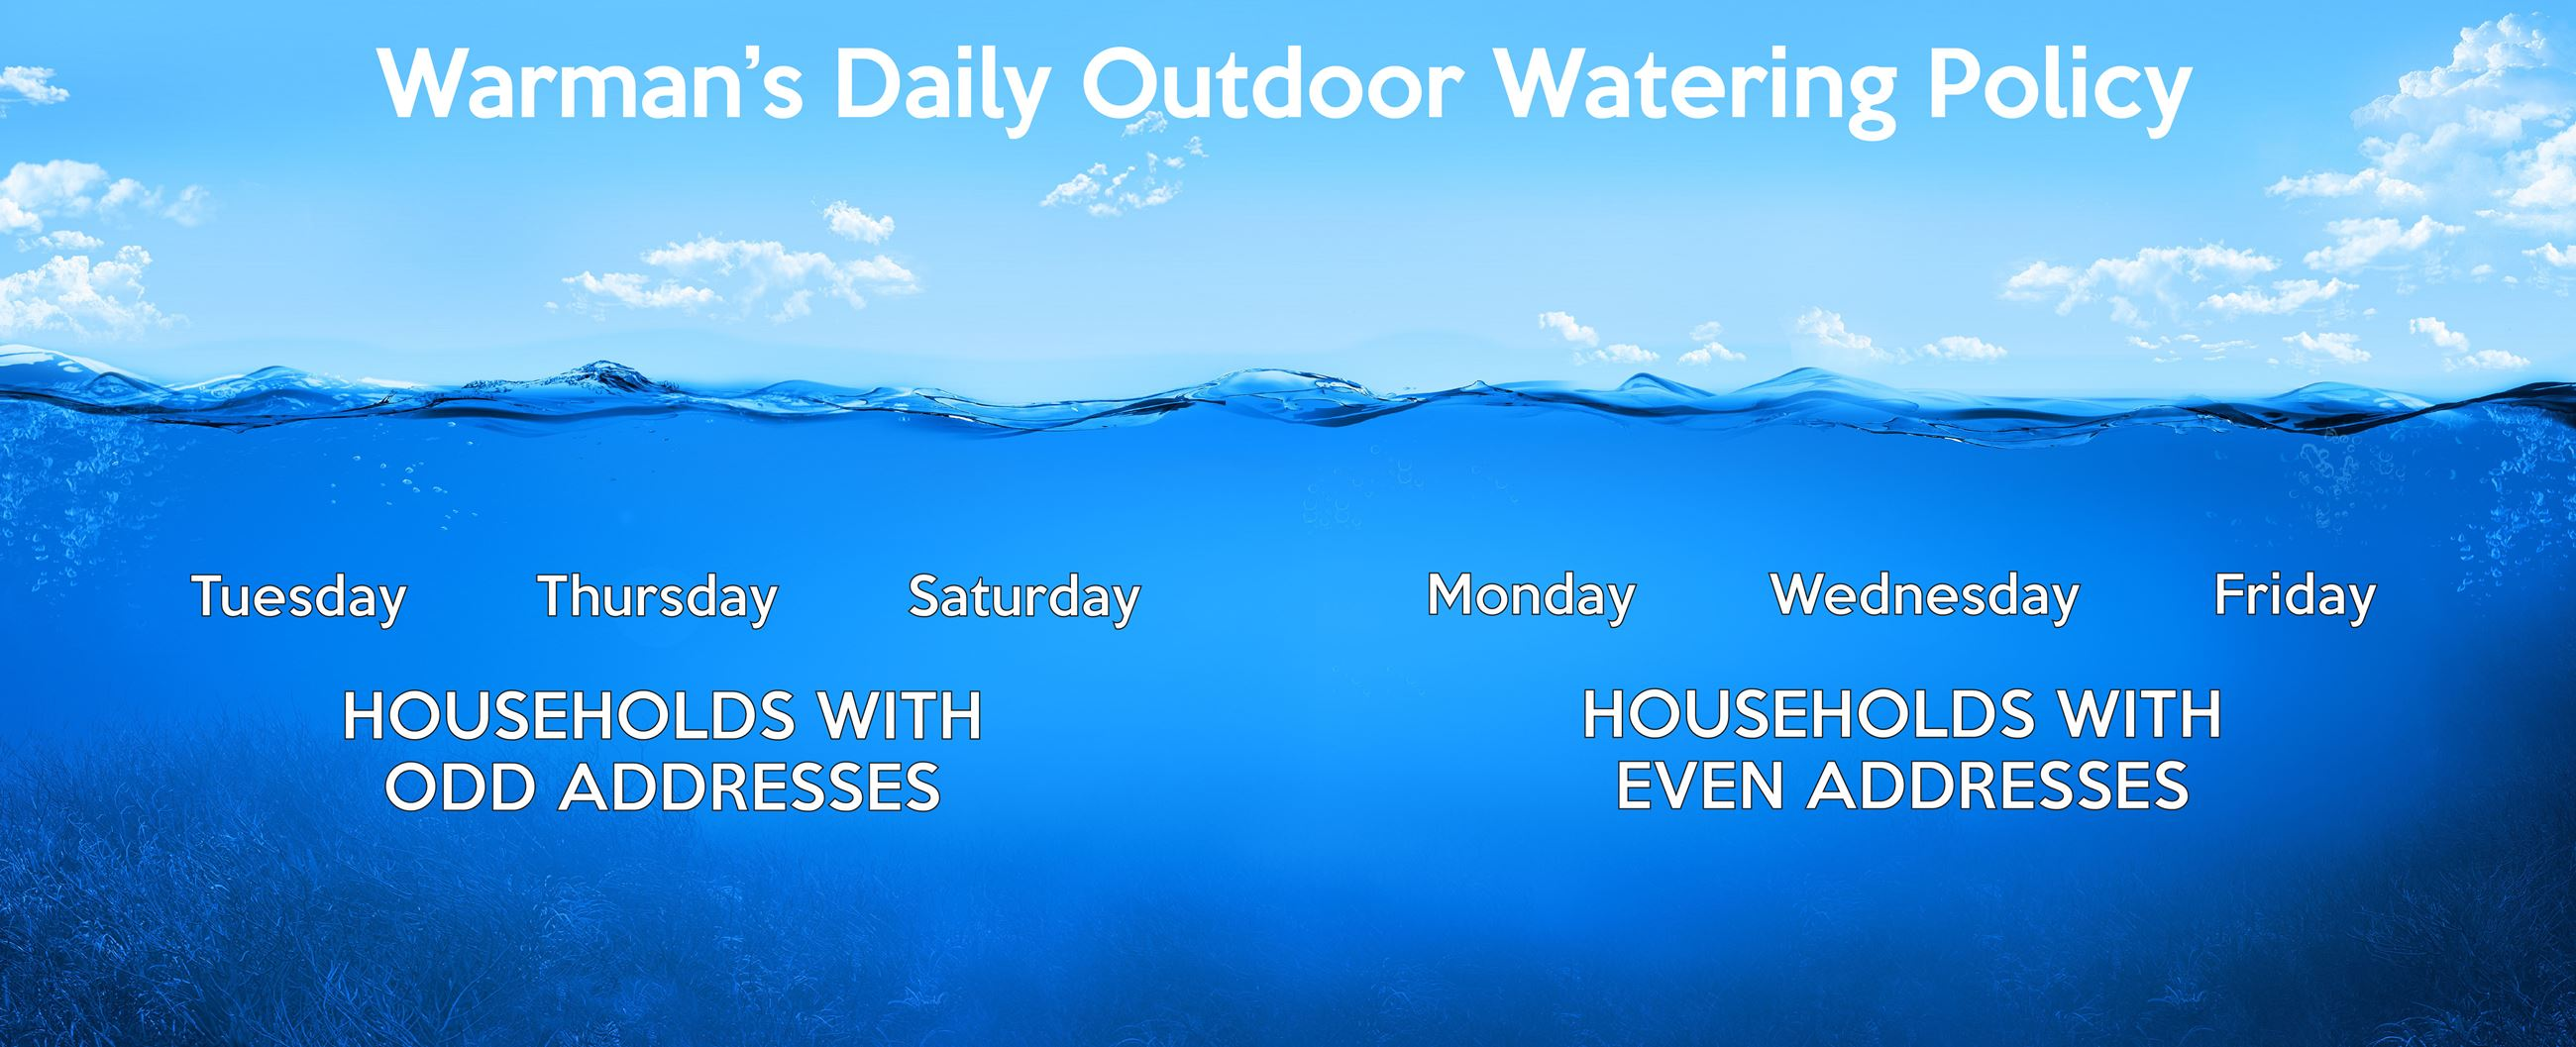 DailyOutdoorWateringPolicy2017